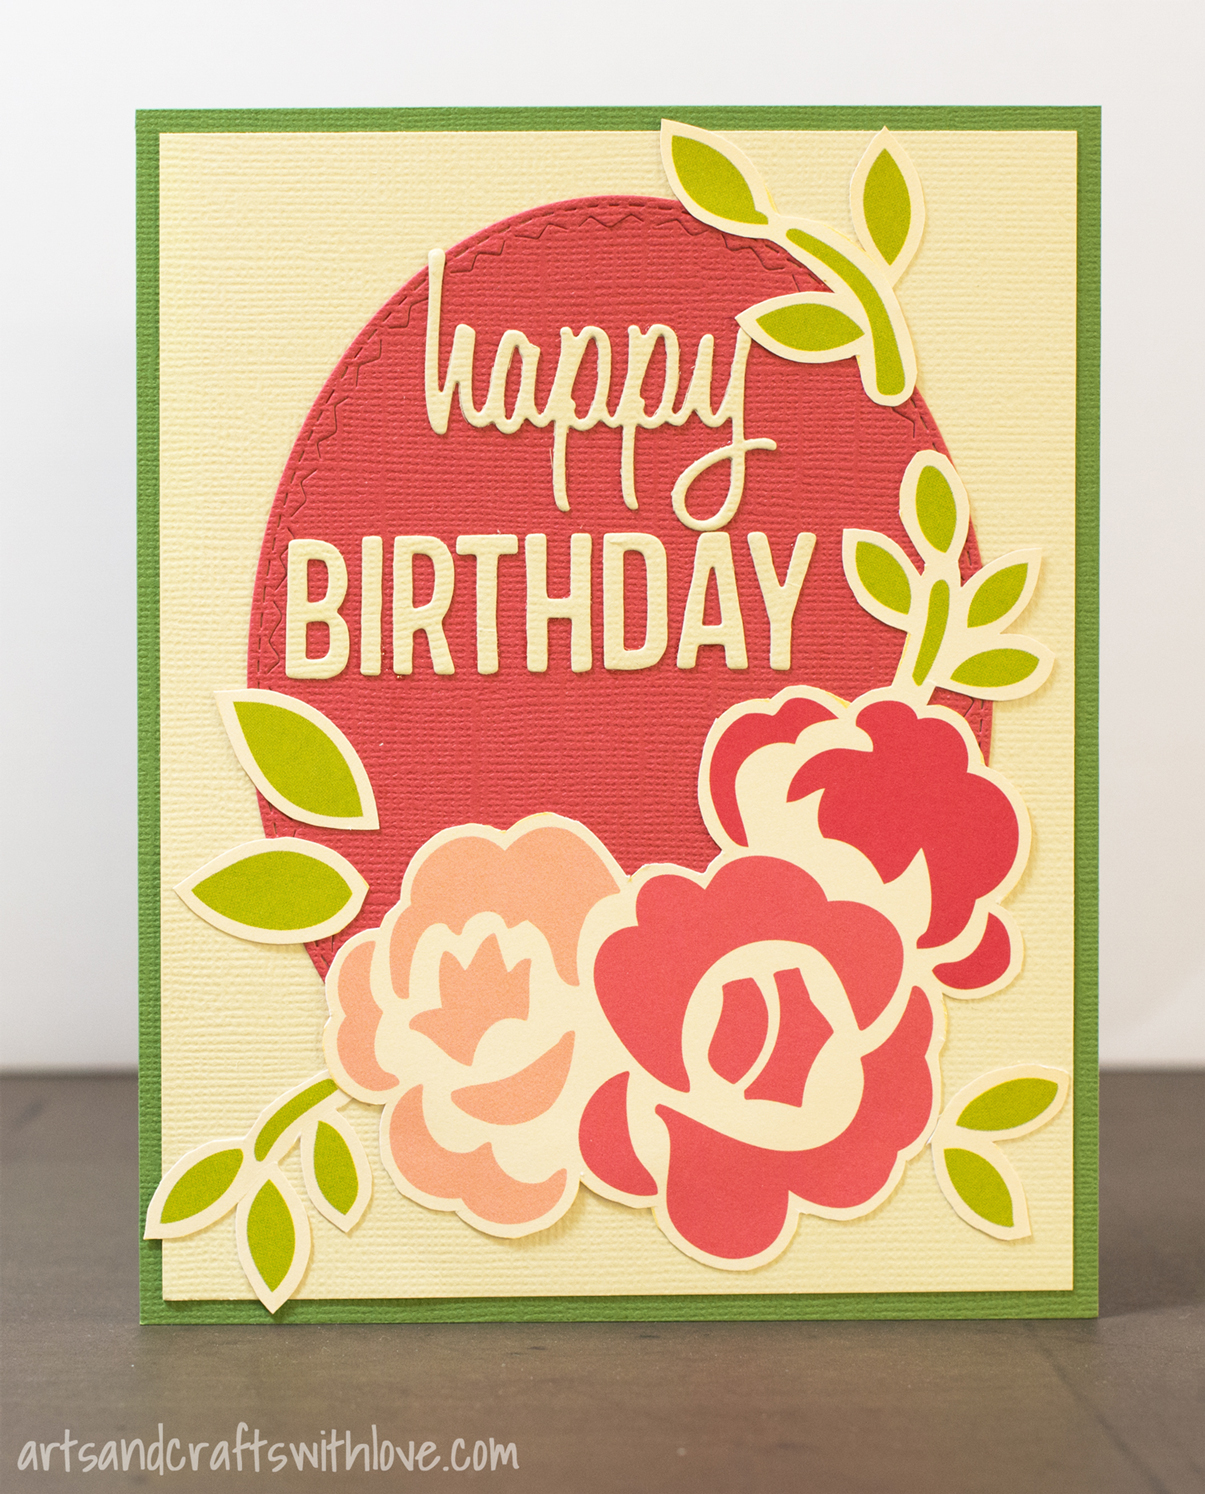 Elinas arts and crafts easy birthday cards cardmaking easy bithday cards with sizzix big shot and patterned papers bookmarktalkfo Choice Image